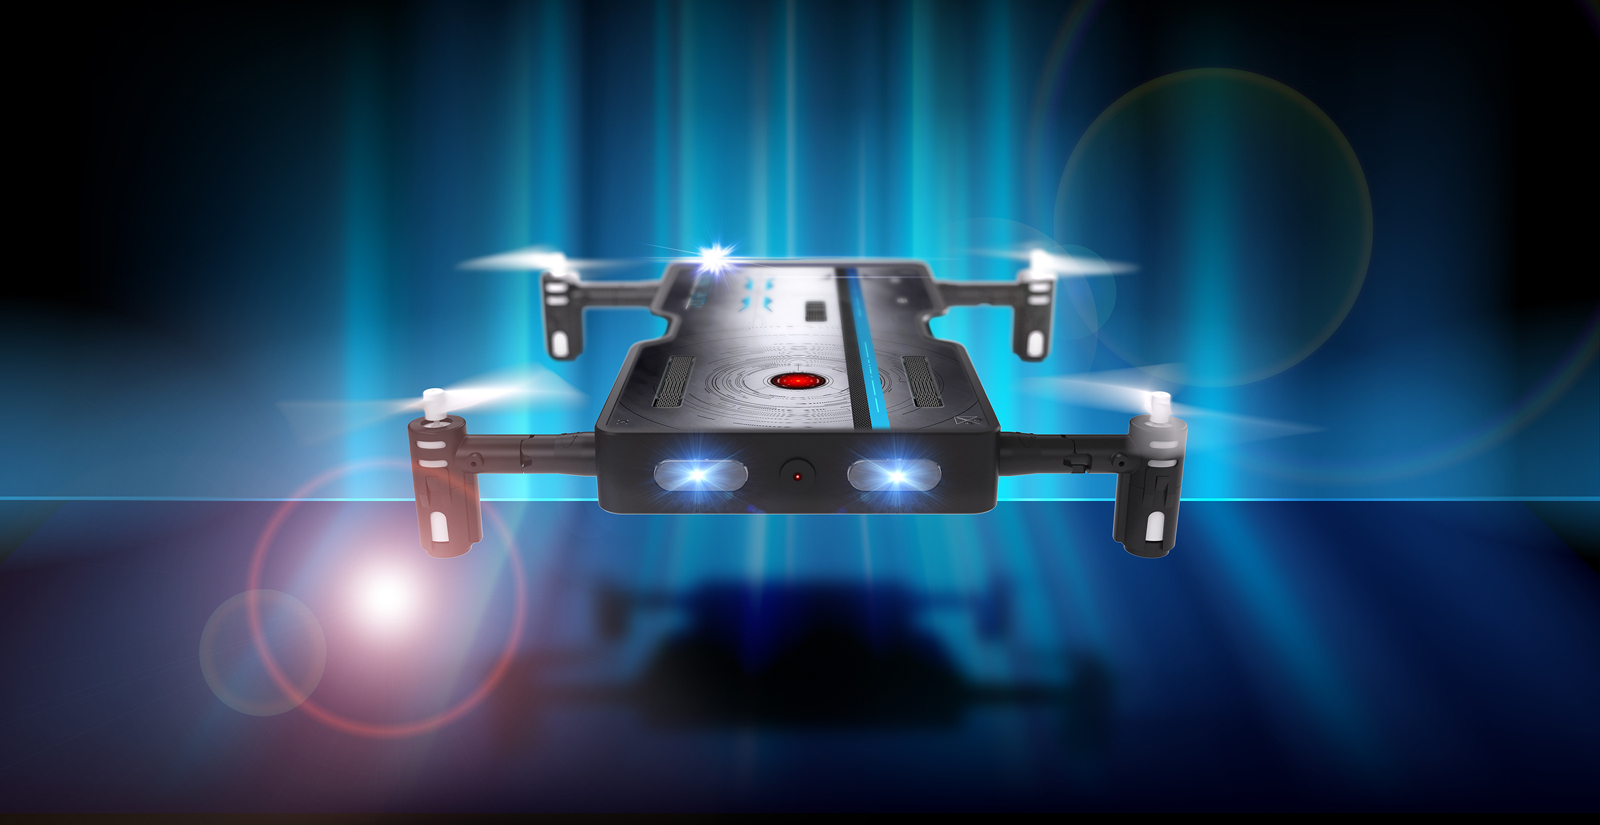 The Real Pocket Drone NX with HD Video Camera Records Indoor